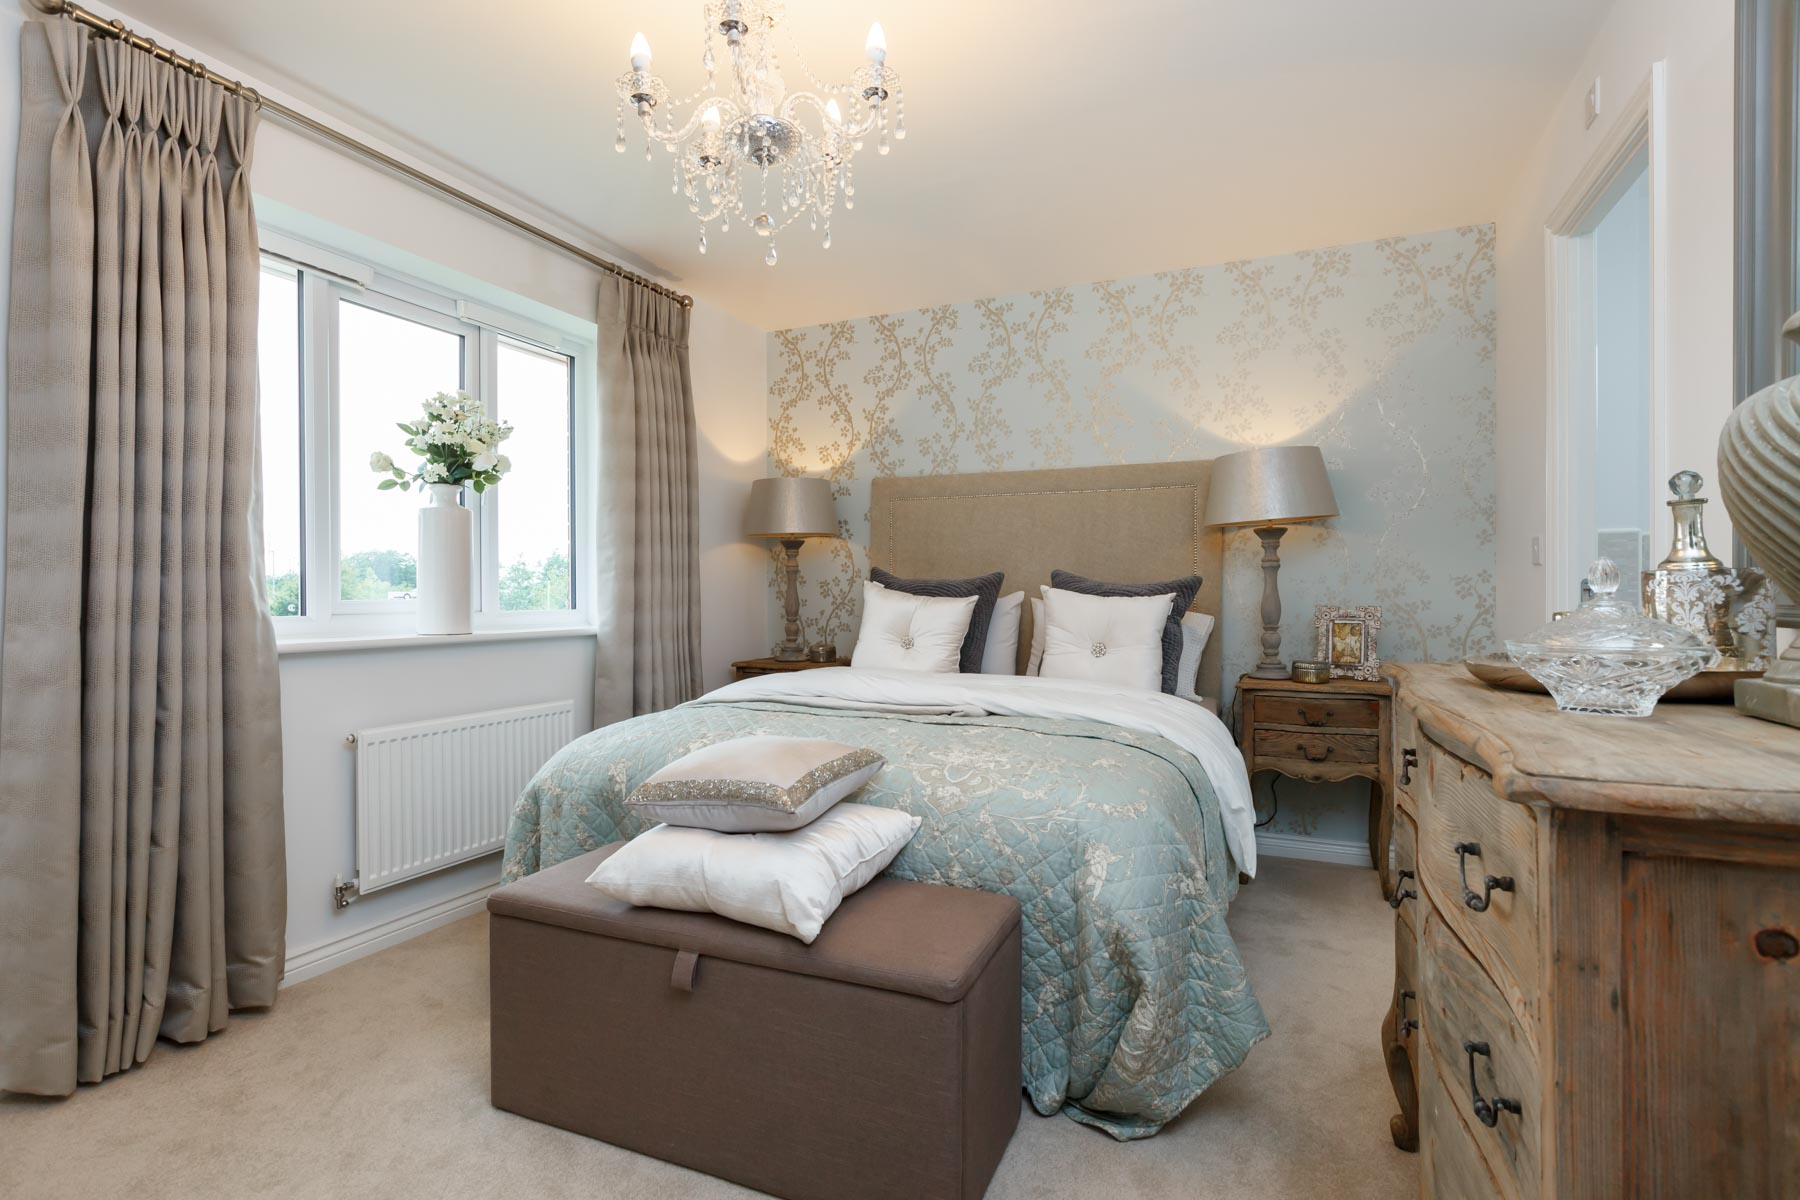 Burntwood Manor - Downham - main bedroom